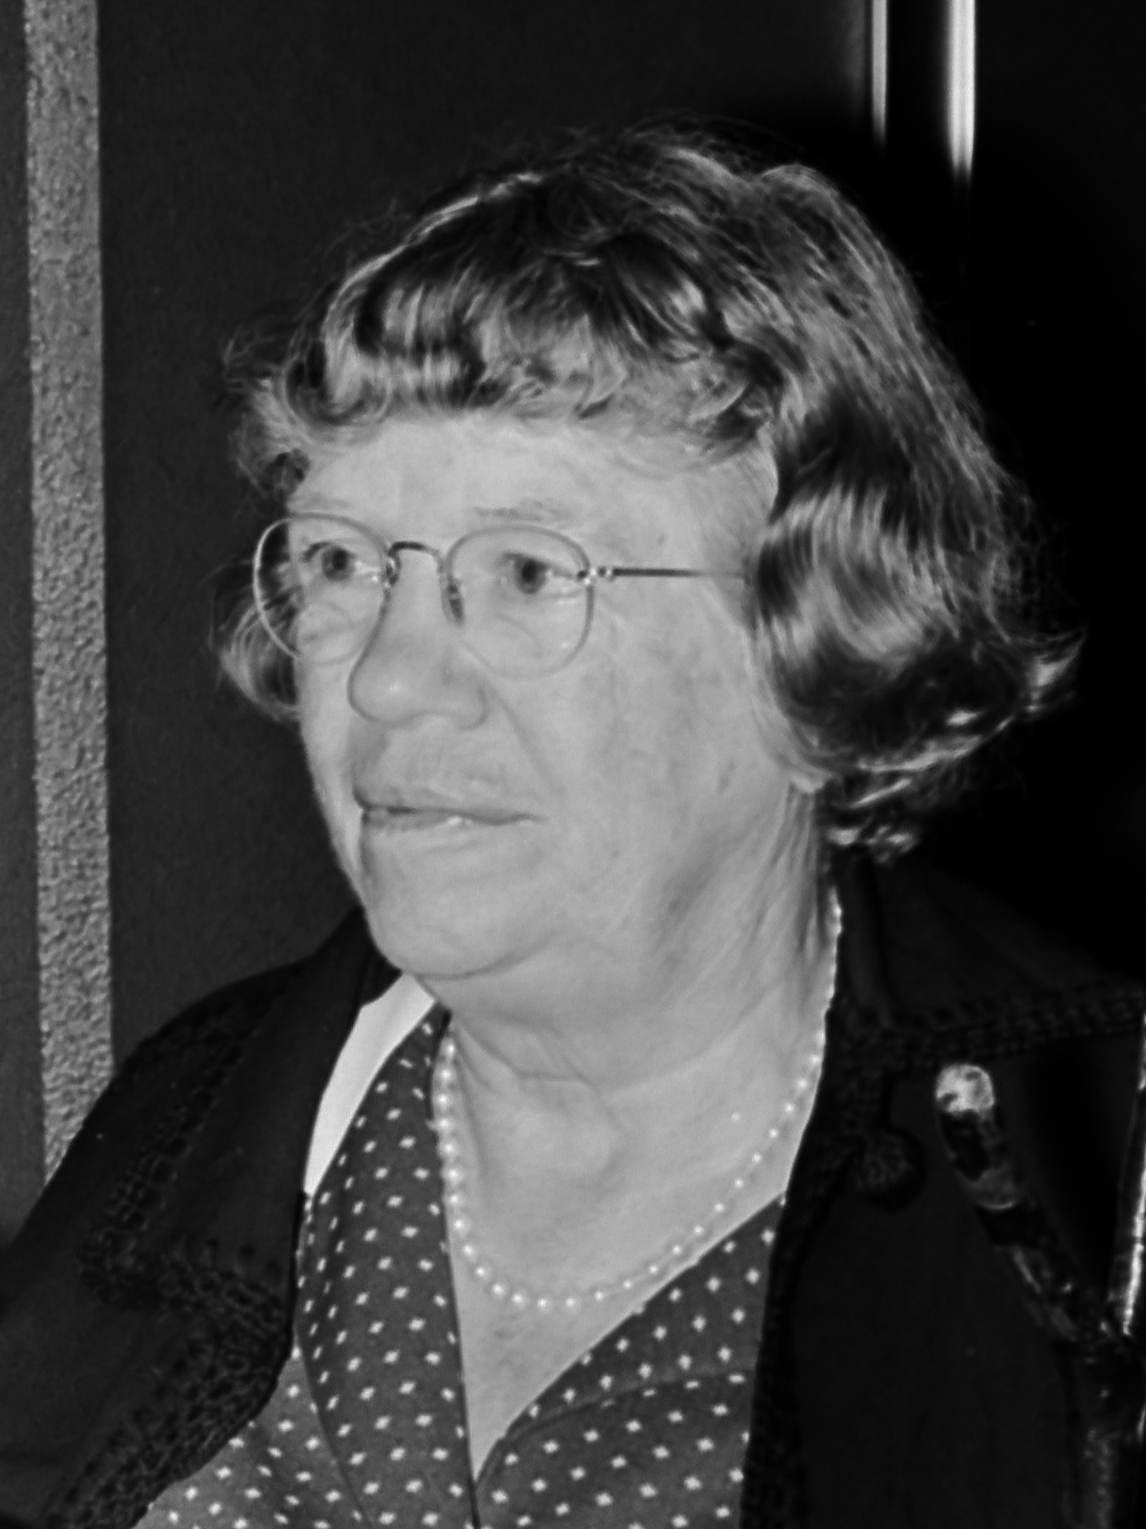 margaret mead biography Biography of margaret mead, anthropologist and writer, whose work more recently has come under question.